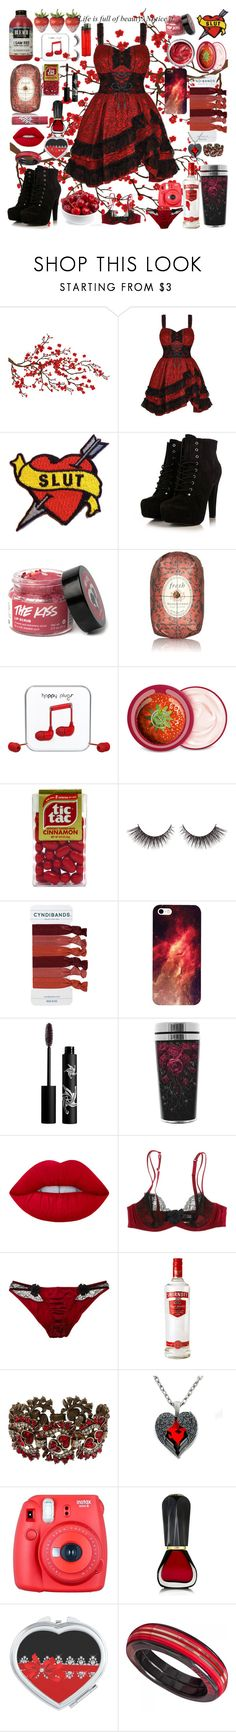 """""""Life Is Beautiful...If You Know What To Look For XxX"""" by cory-price ❤ liked on Polyvore featuring Brewster Home Fashions, Fresh, Happy Plugs, The Body Shop, Rouge Bunny Rouge, Lime Crime, Myla, Sweet Romance, Fuji and Oribe"""